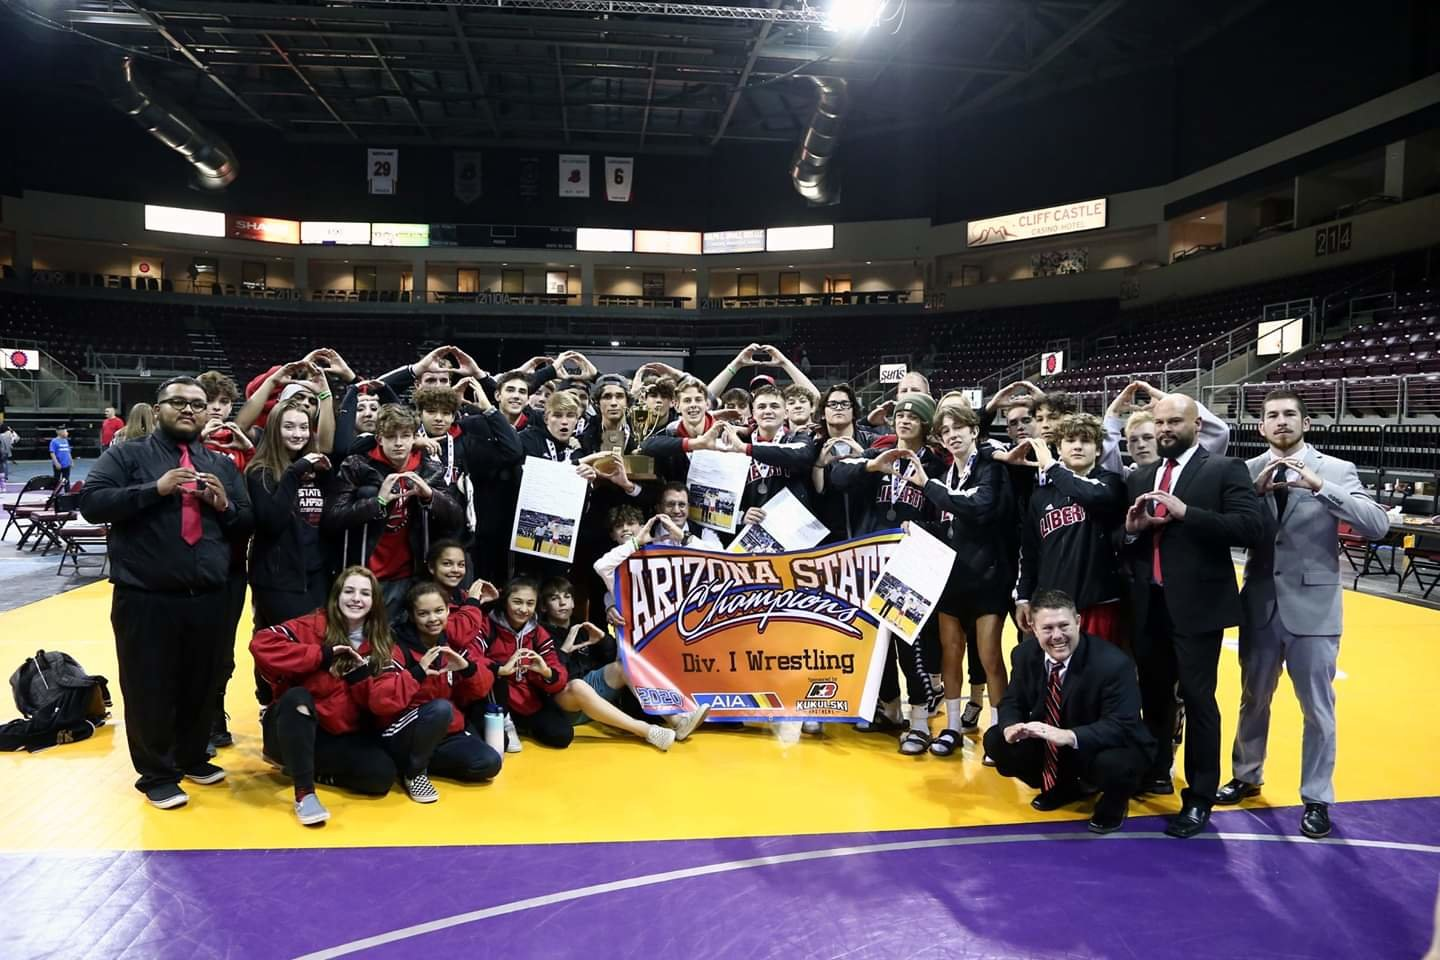 The Liberty boys wrestling team poses Feb. 14 in Prescott Valley after winning its second straight Division I state title. It is the program's third title overall, all within the past five years. [Submitted photo]